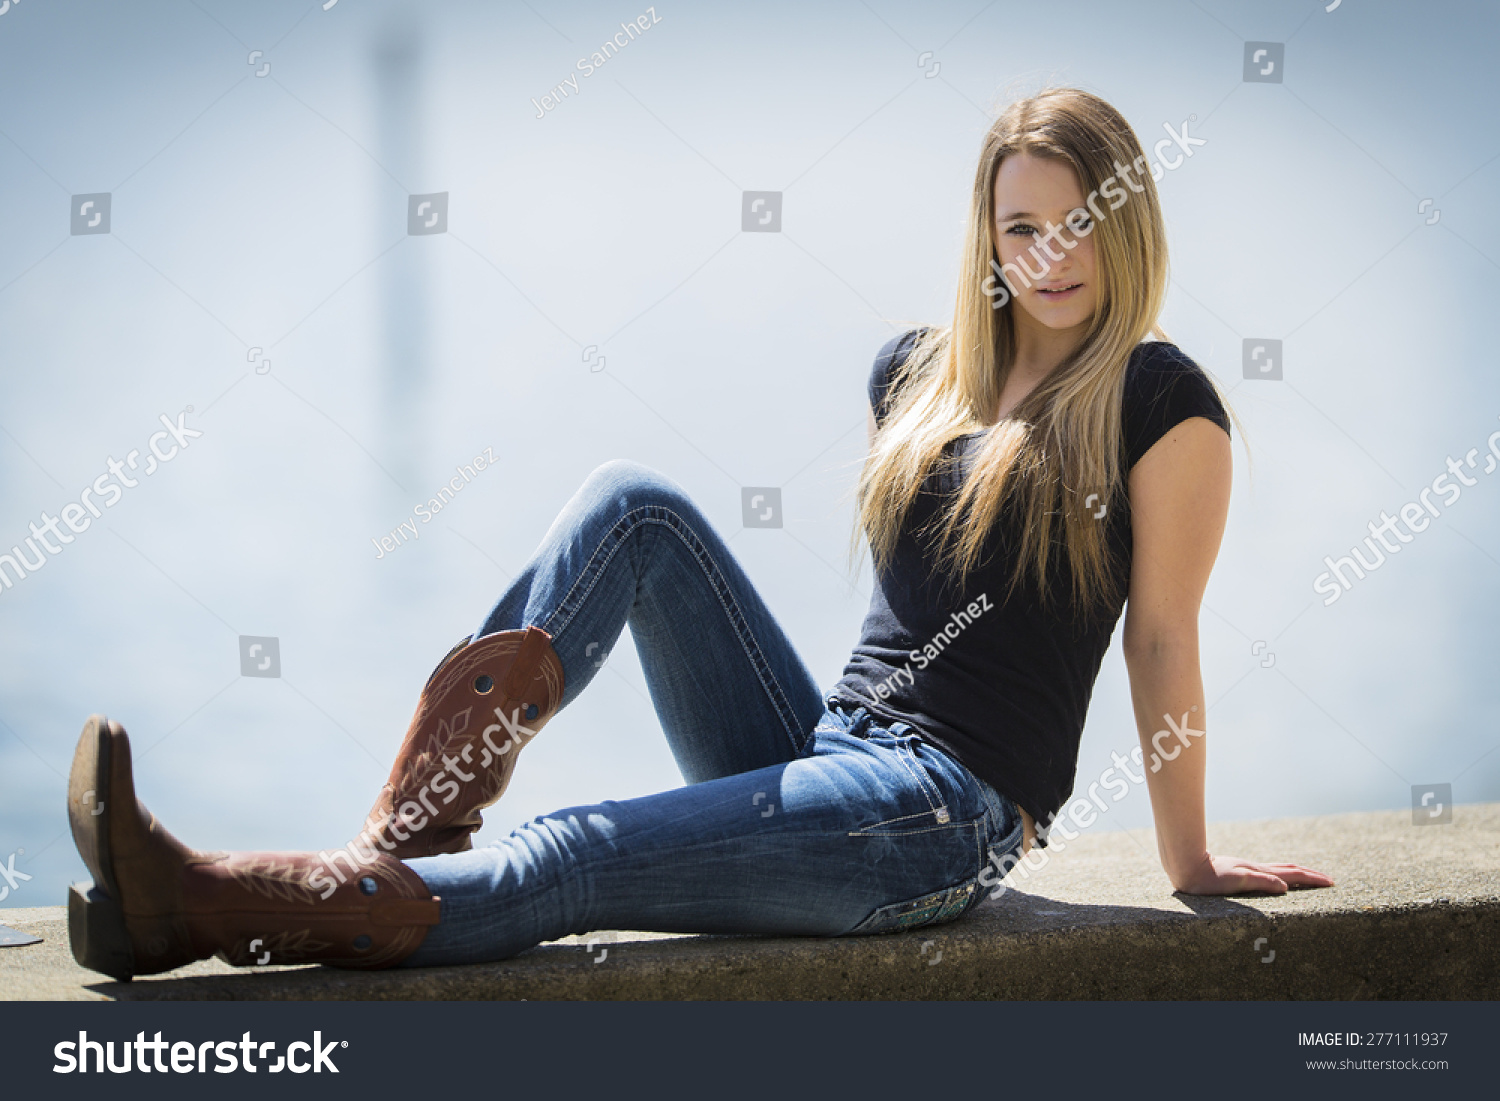 Young Blonde Girl Posing Cowboy Boots